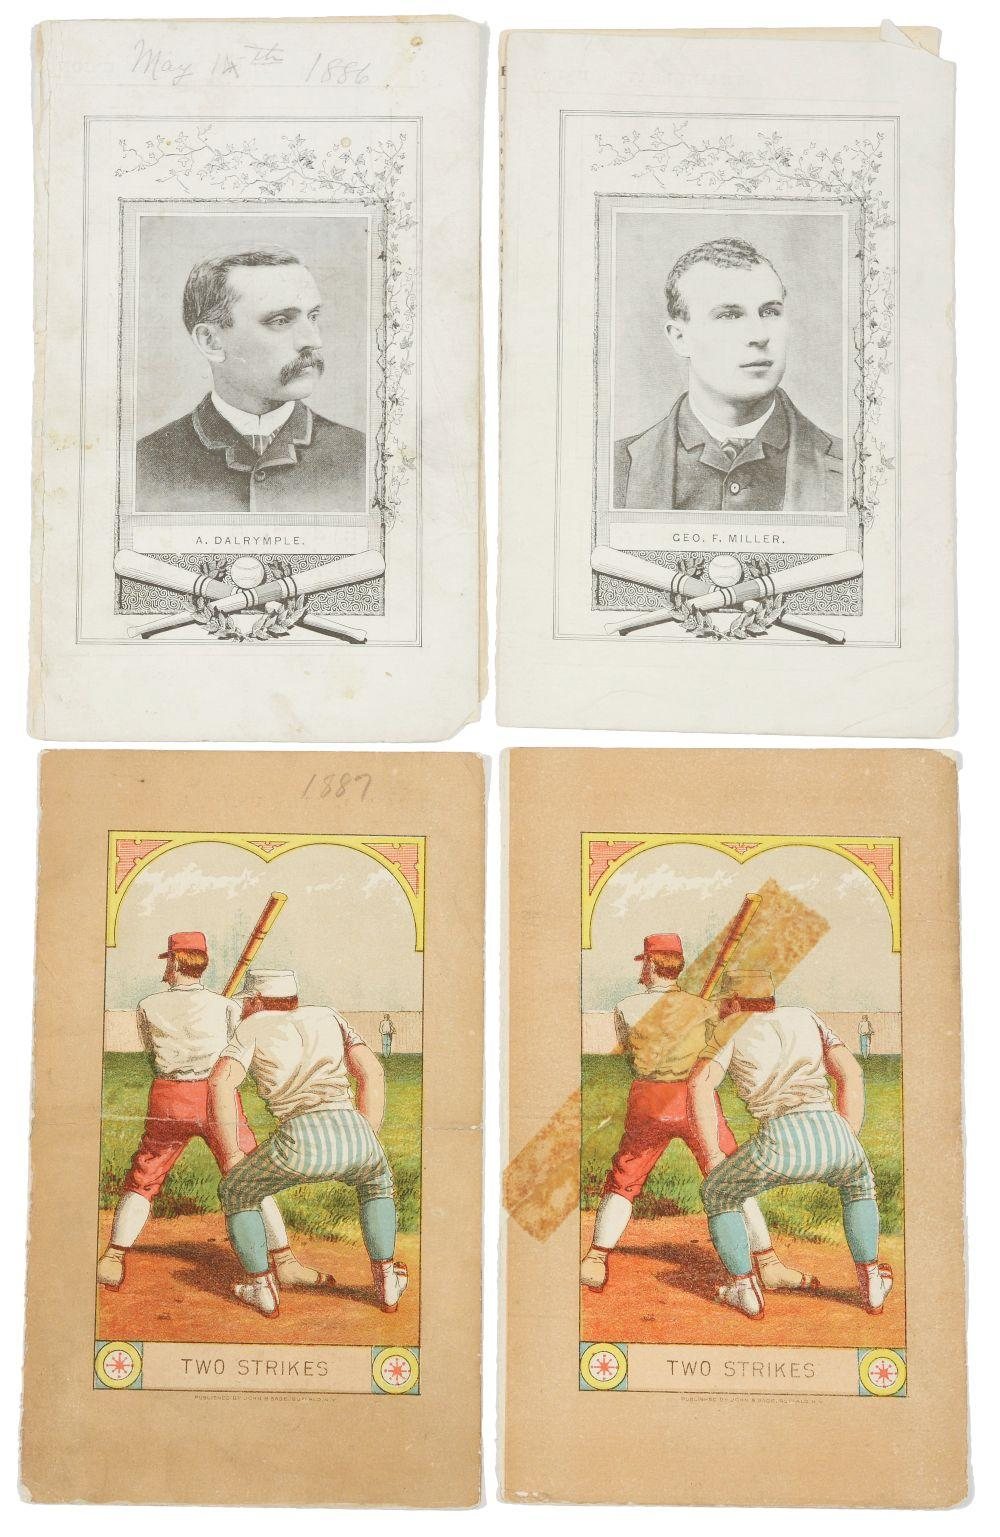 Lot of 5: 1880s Allegheny Baseball Club Scorecards.